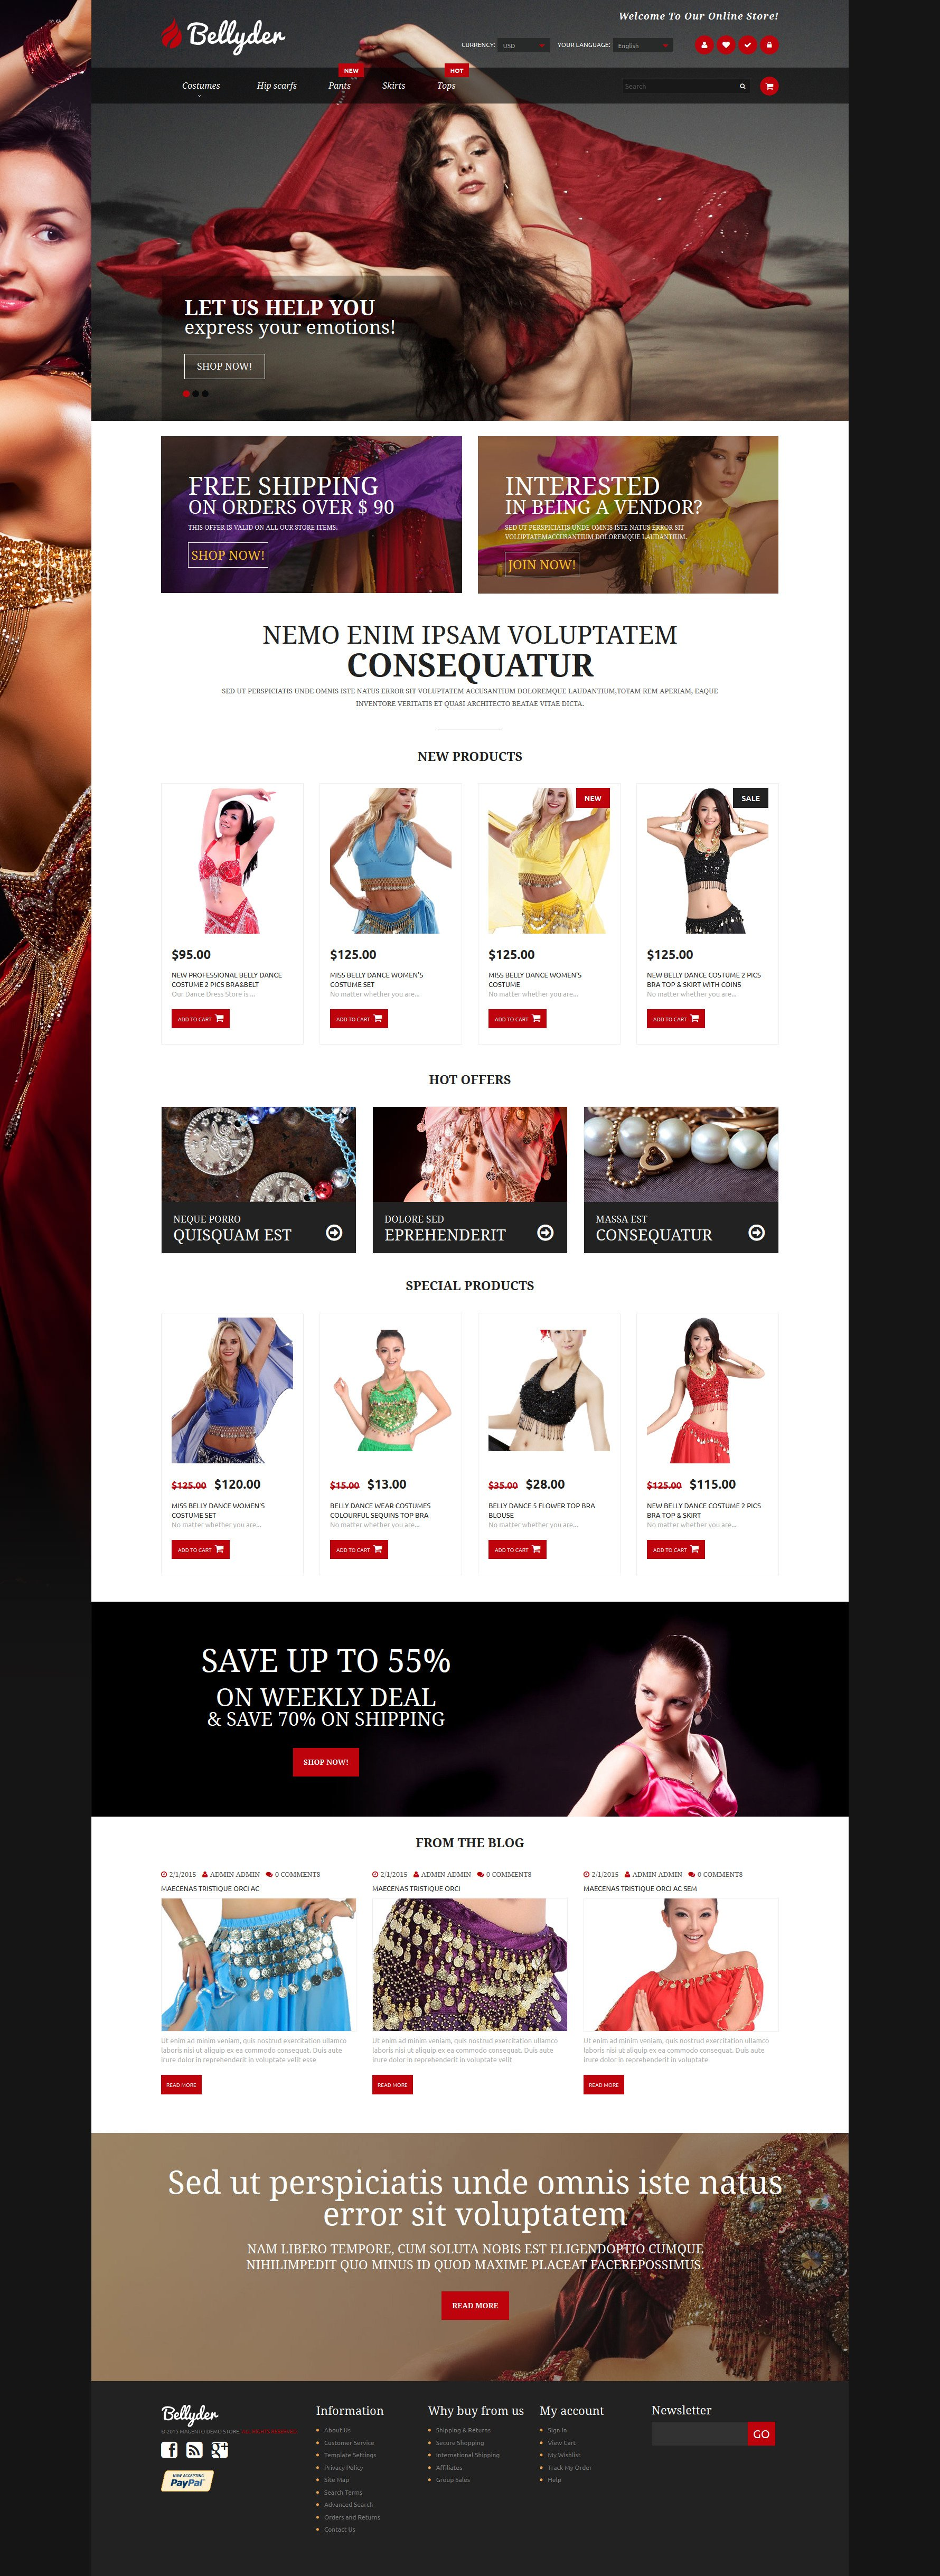 The Belly Dance Magento Design 52989, one of the best Magento themes of its kind (sport, most popular), also known as belly dance Magento template, dress Magento template, clothes store Magento template, wear Magento template, clothing Magento template, apparel Magento template, work Magento template, shoes Magento template, gloves Magento template, wear Magento template, Safety Boots WEAR footwear Magento template, shirts Magento template, protective Magento template, goggles Magento template, protective Magento template, eyewear and related with belly dance, dress, clothes store, wear, clothing, apparel, work, shoes, gloves, wear, Safety Boots WEAR footwear, shirts, protective, goggles, protective, eyewear, etc.